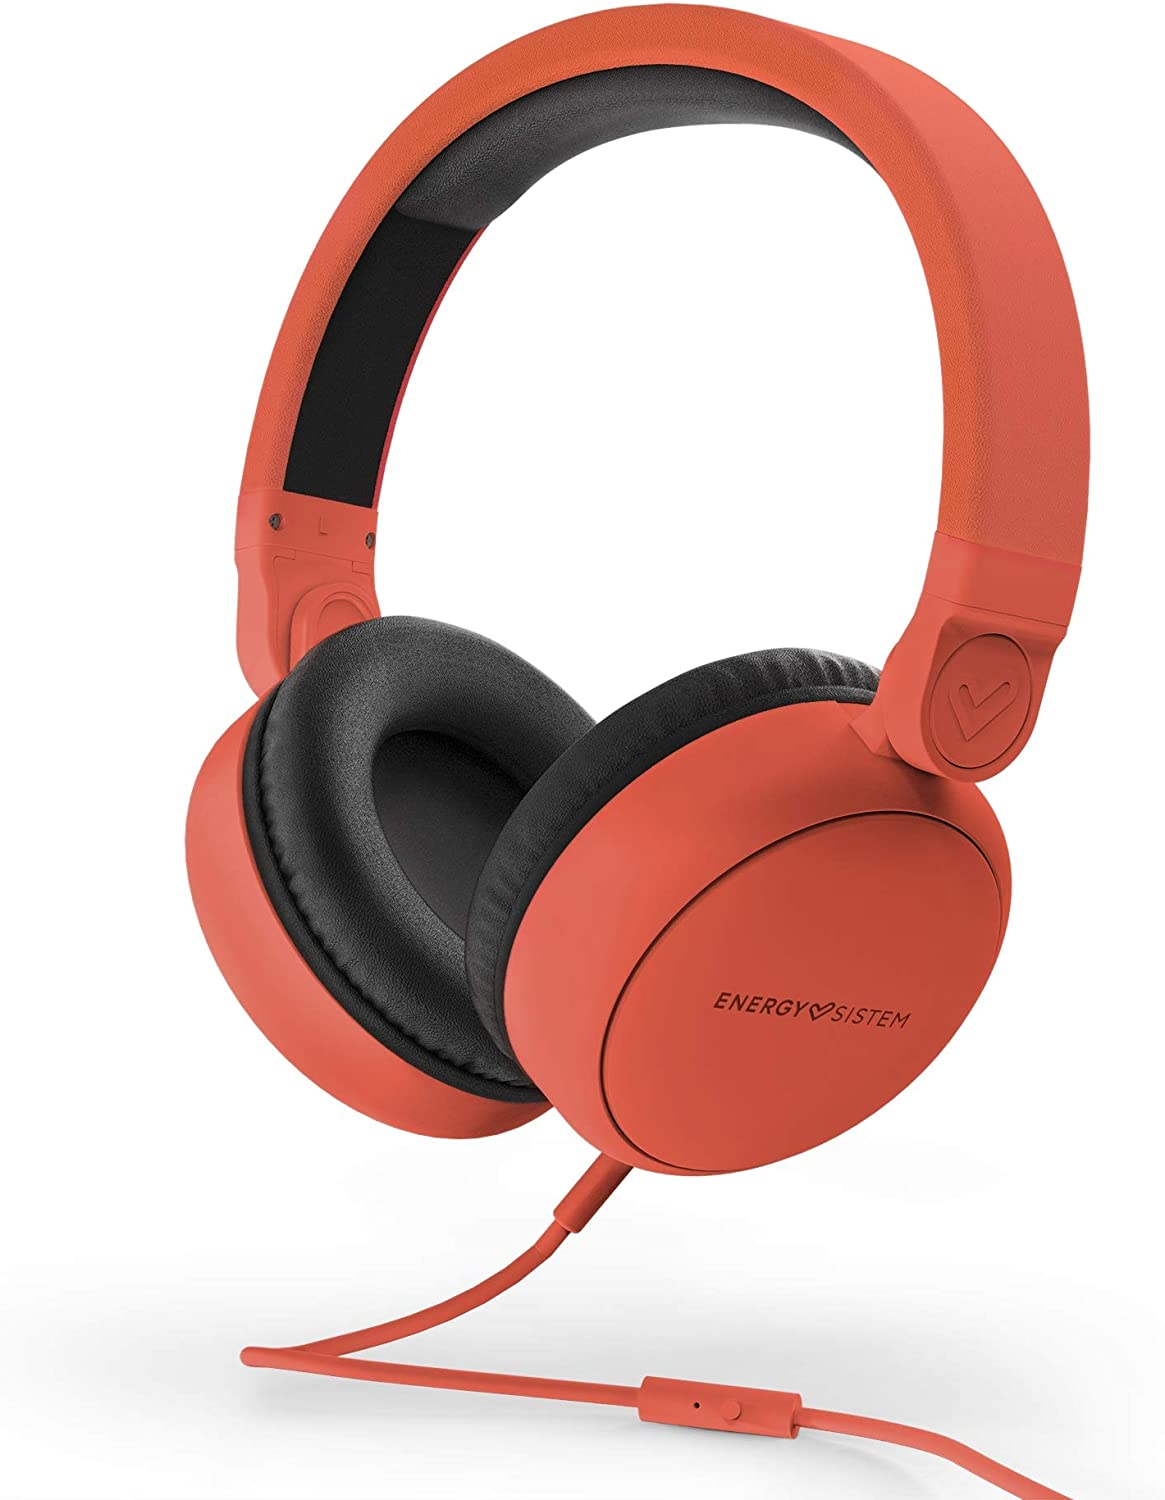 Energy Sistem Headphones Style 1 Talk Chili Red (Auriculares,Over-Ear, 180º Foldable, Detachable Cable Audio-In): Amazon.es: Electrónica